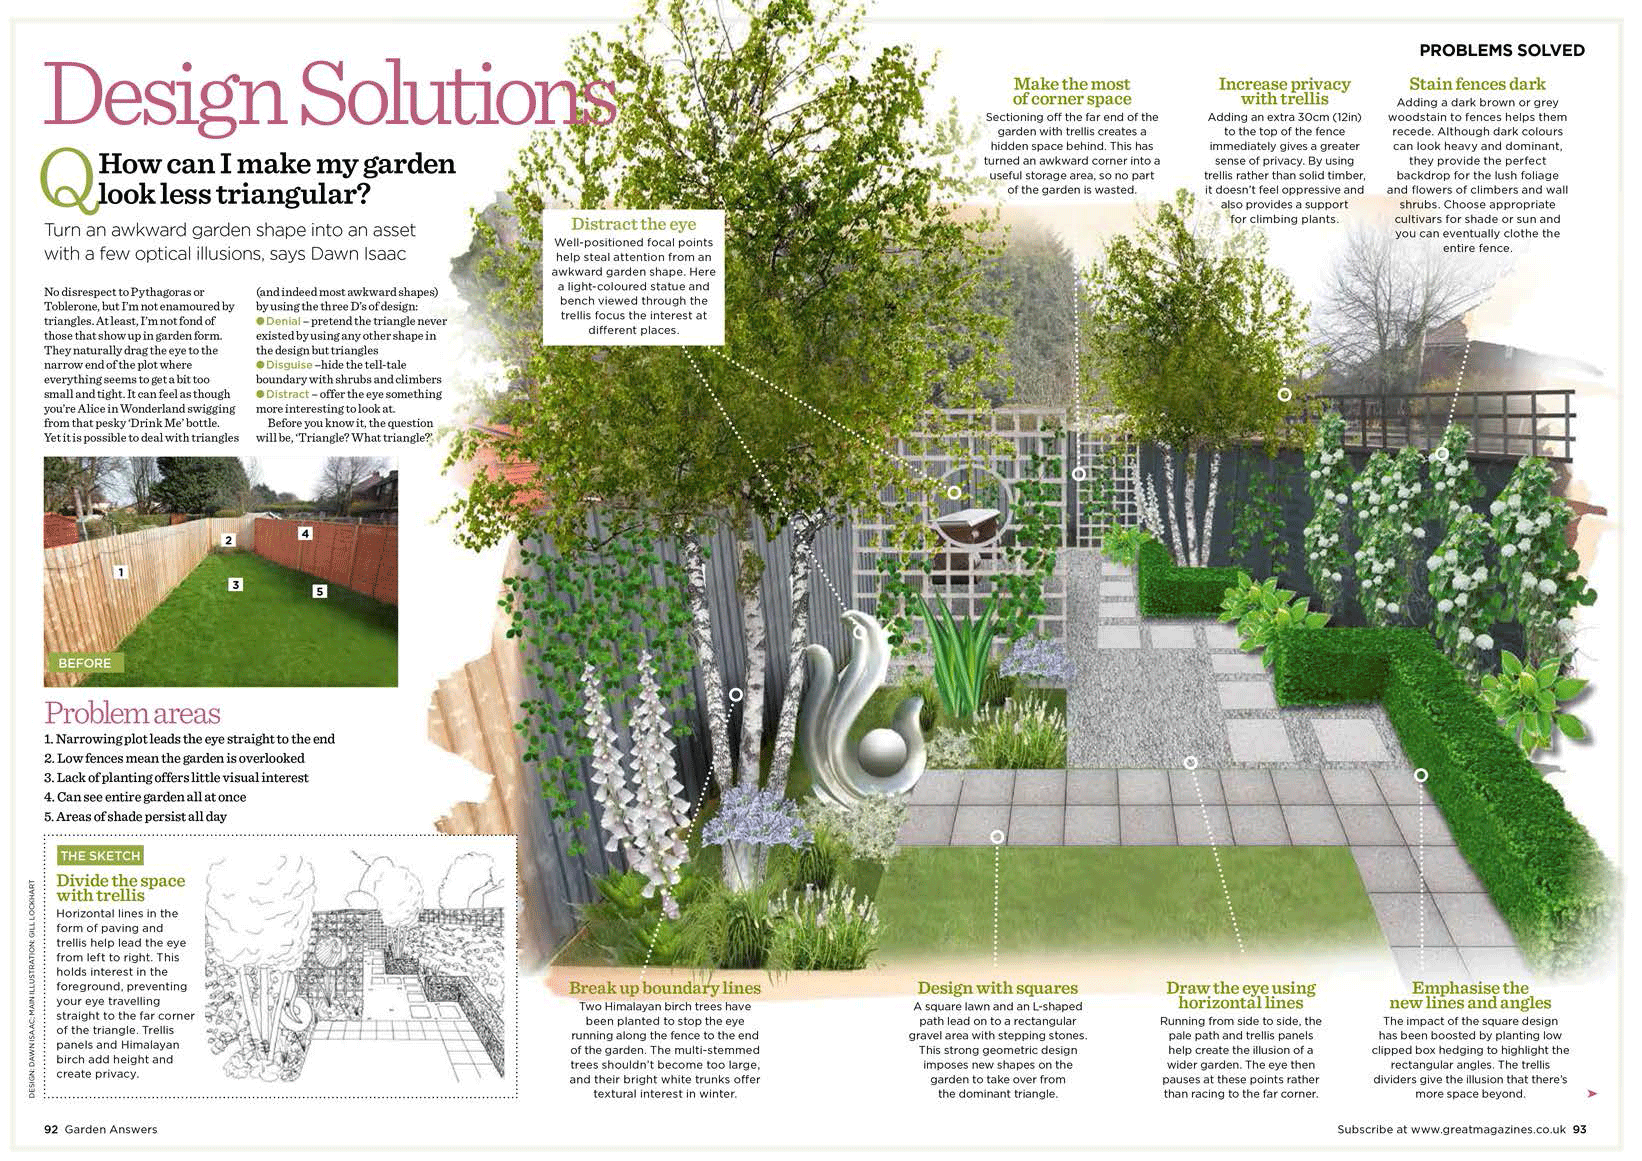 Tantrums and miracles in the garden a blog about my for Garden designs for triangular gardens